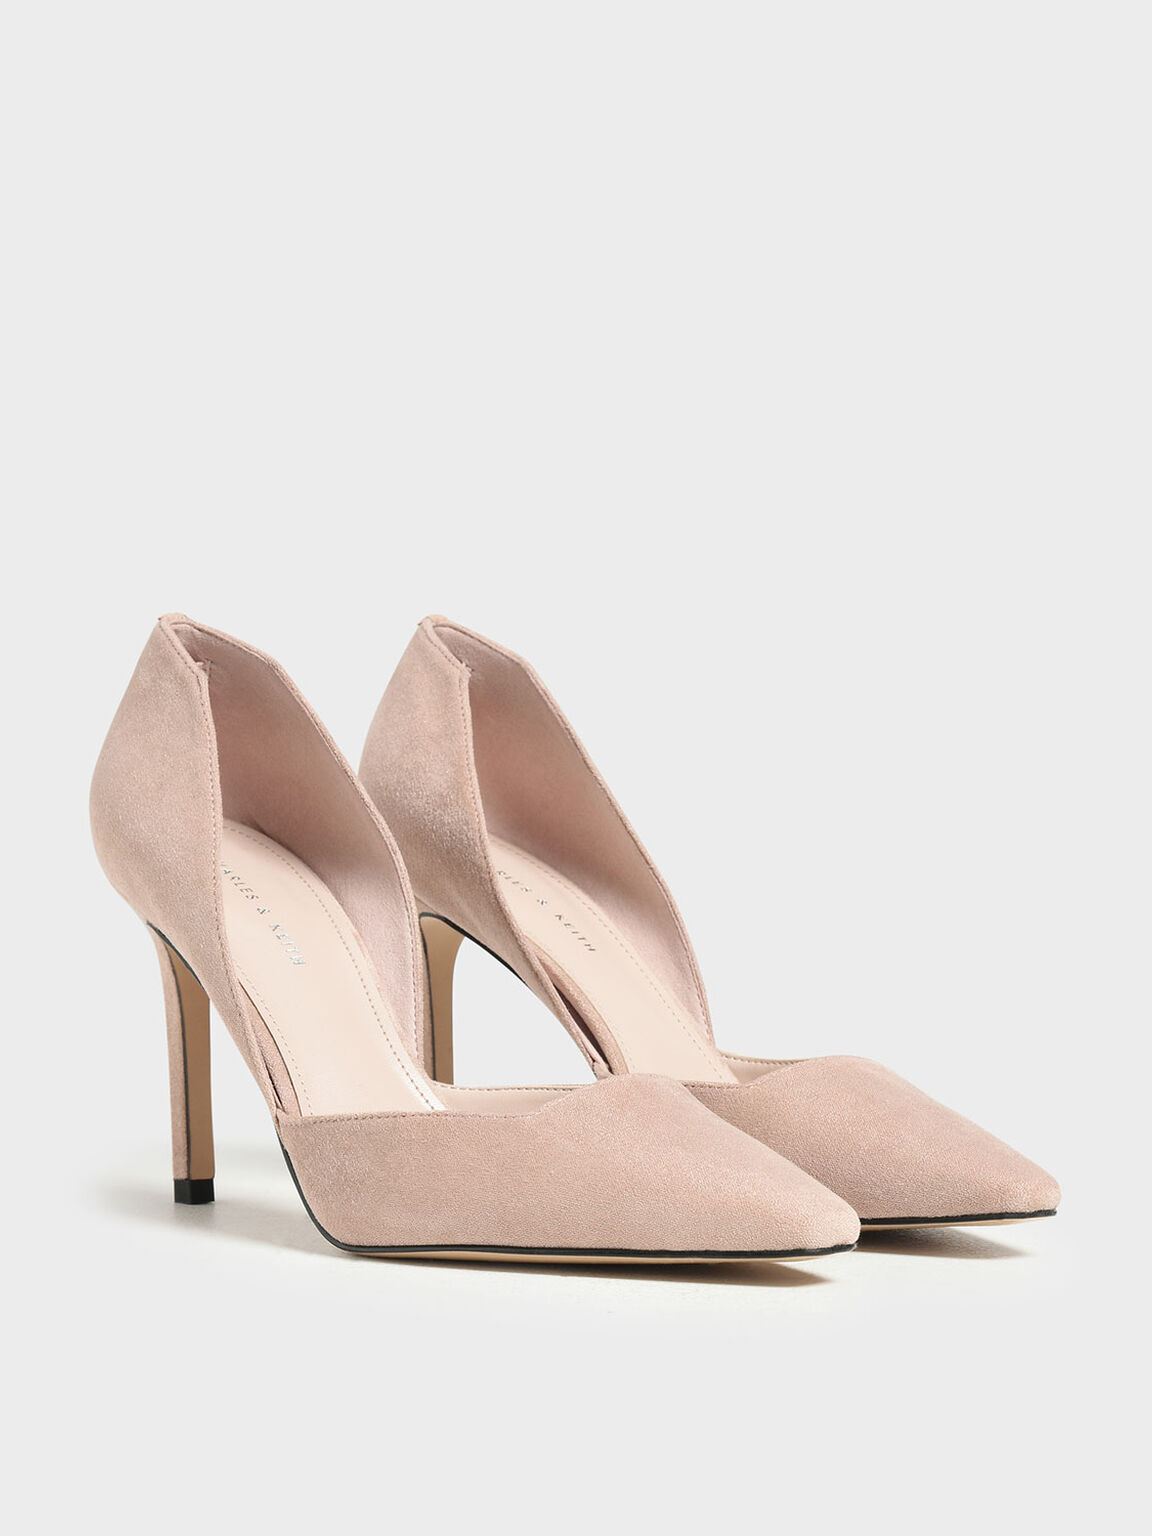 Classic D'Orsay Stiletto Pumps, Nude, hi-res